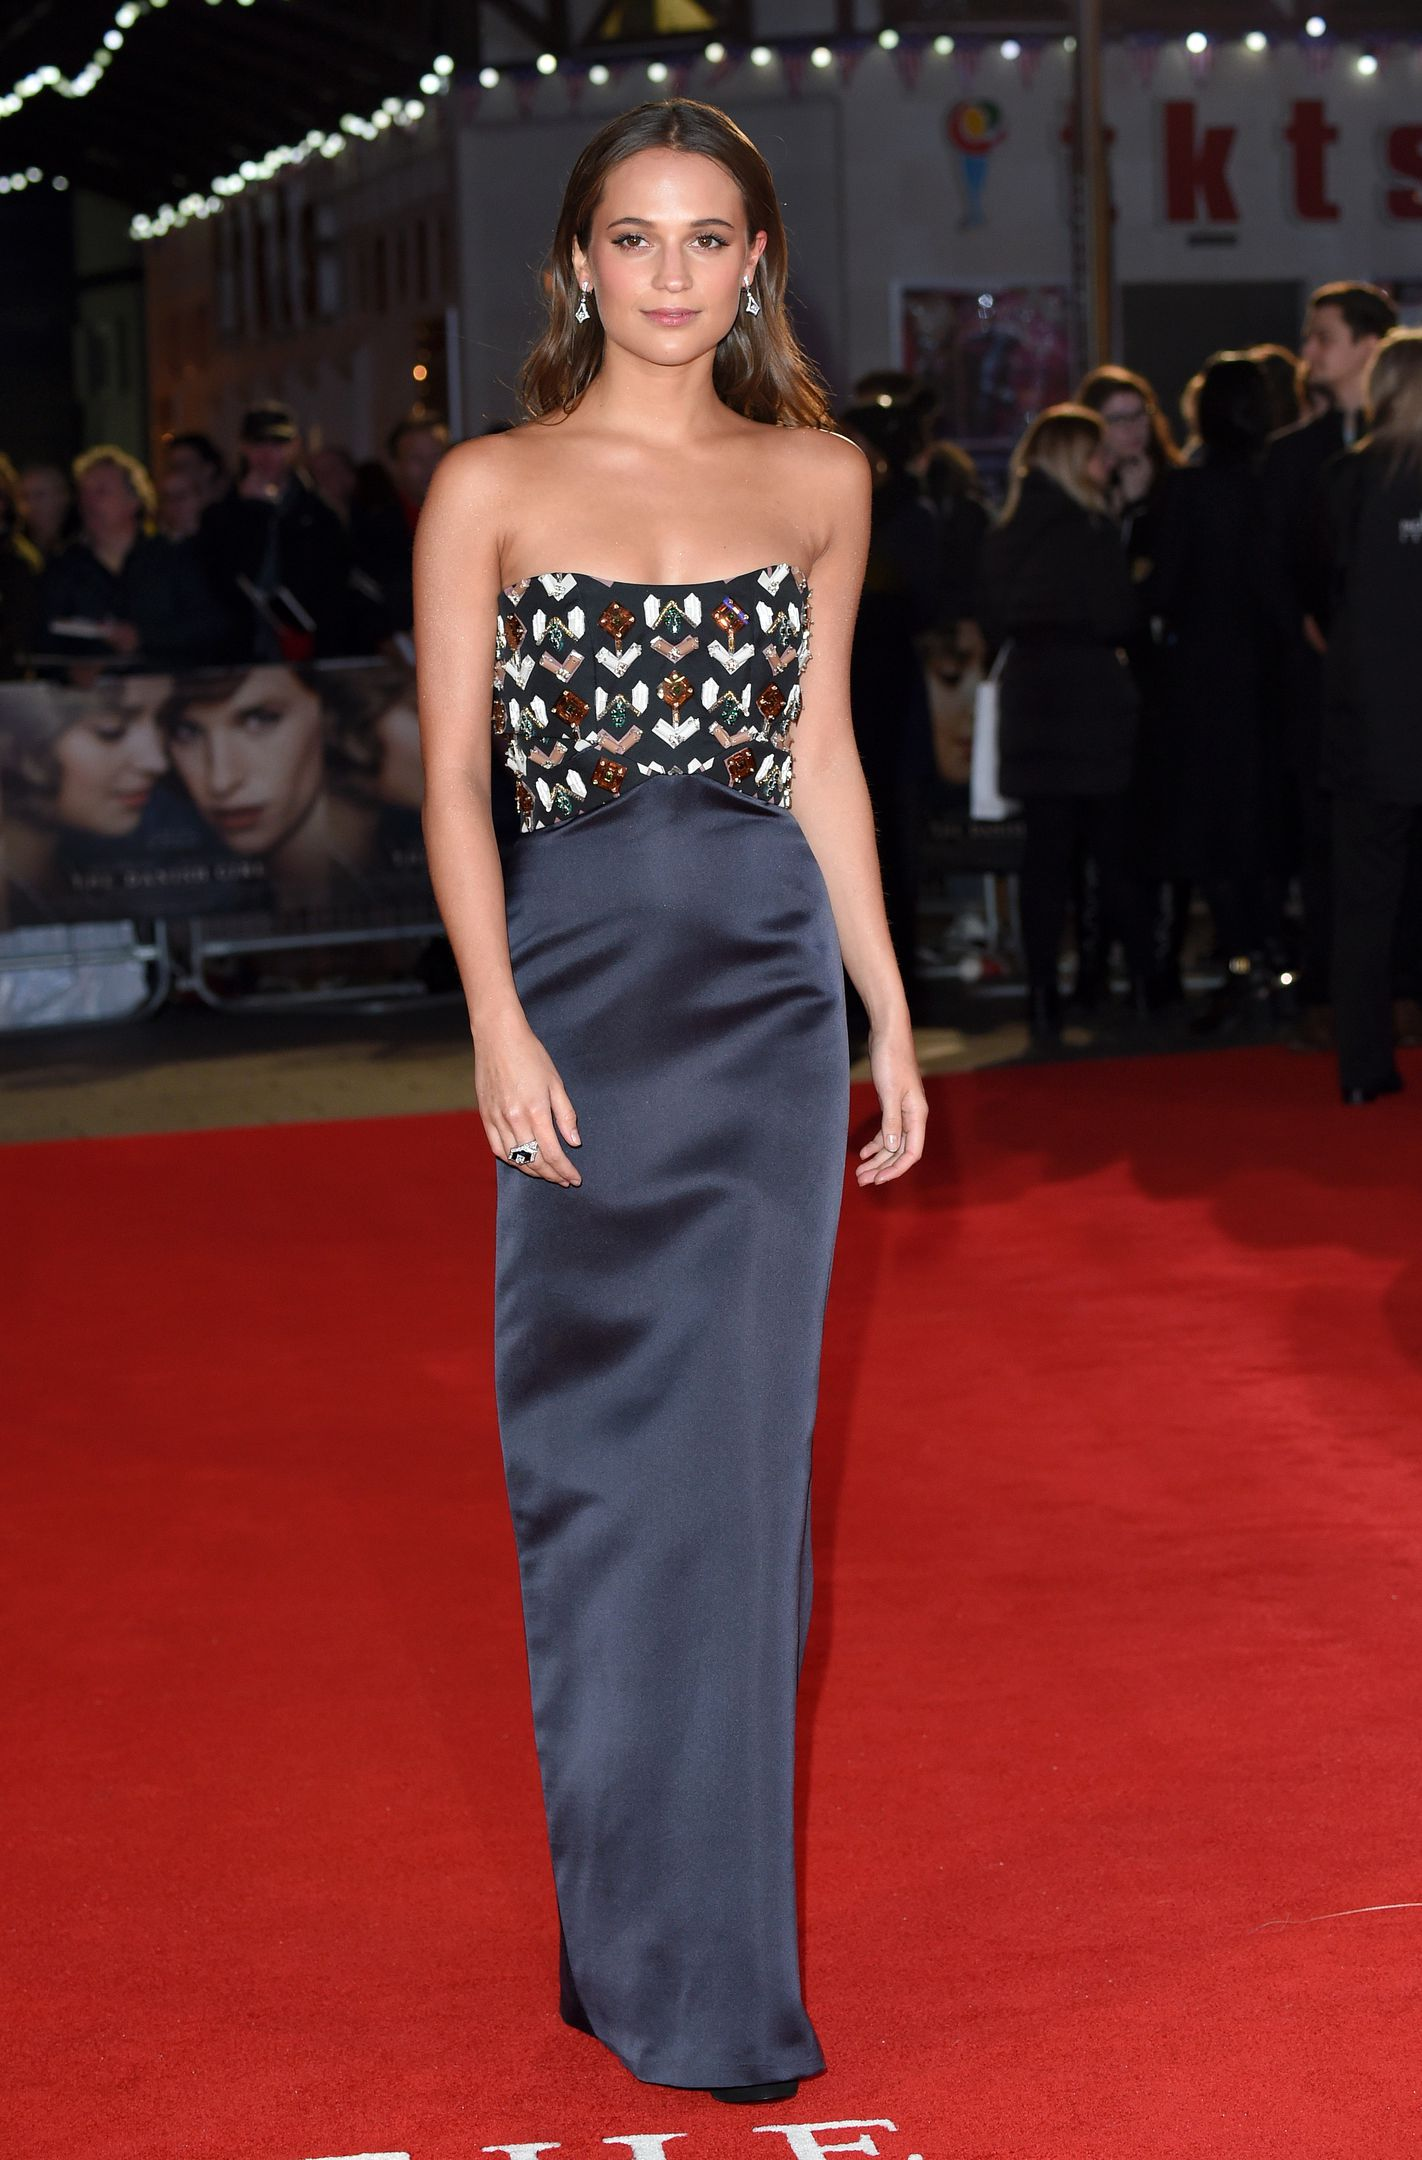 <p>From red carpet regulars to bloggers, these were the women who won the style stakes this year.</p><p>Alicia Vikander</p>